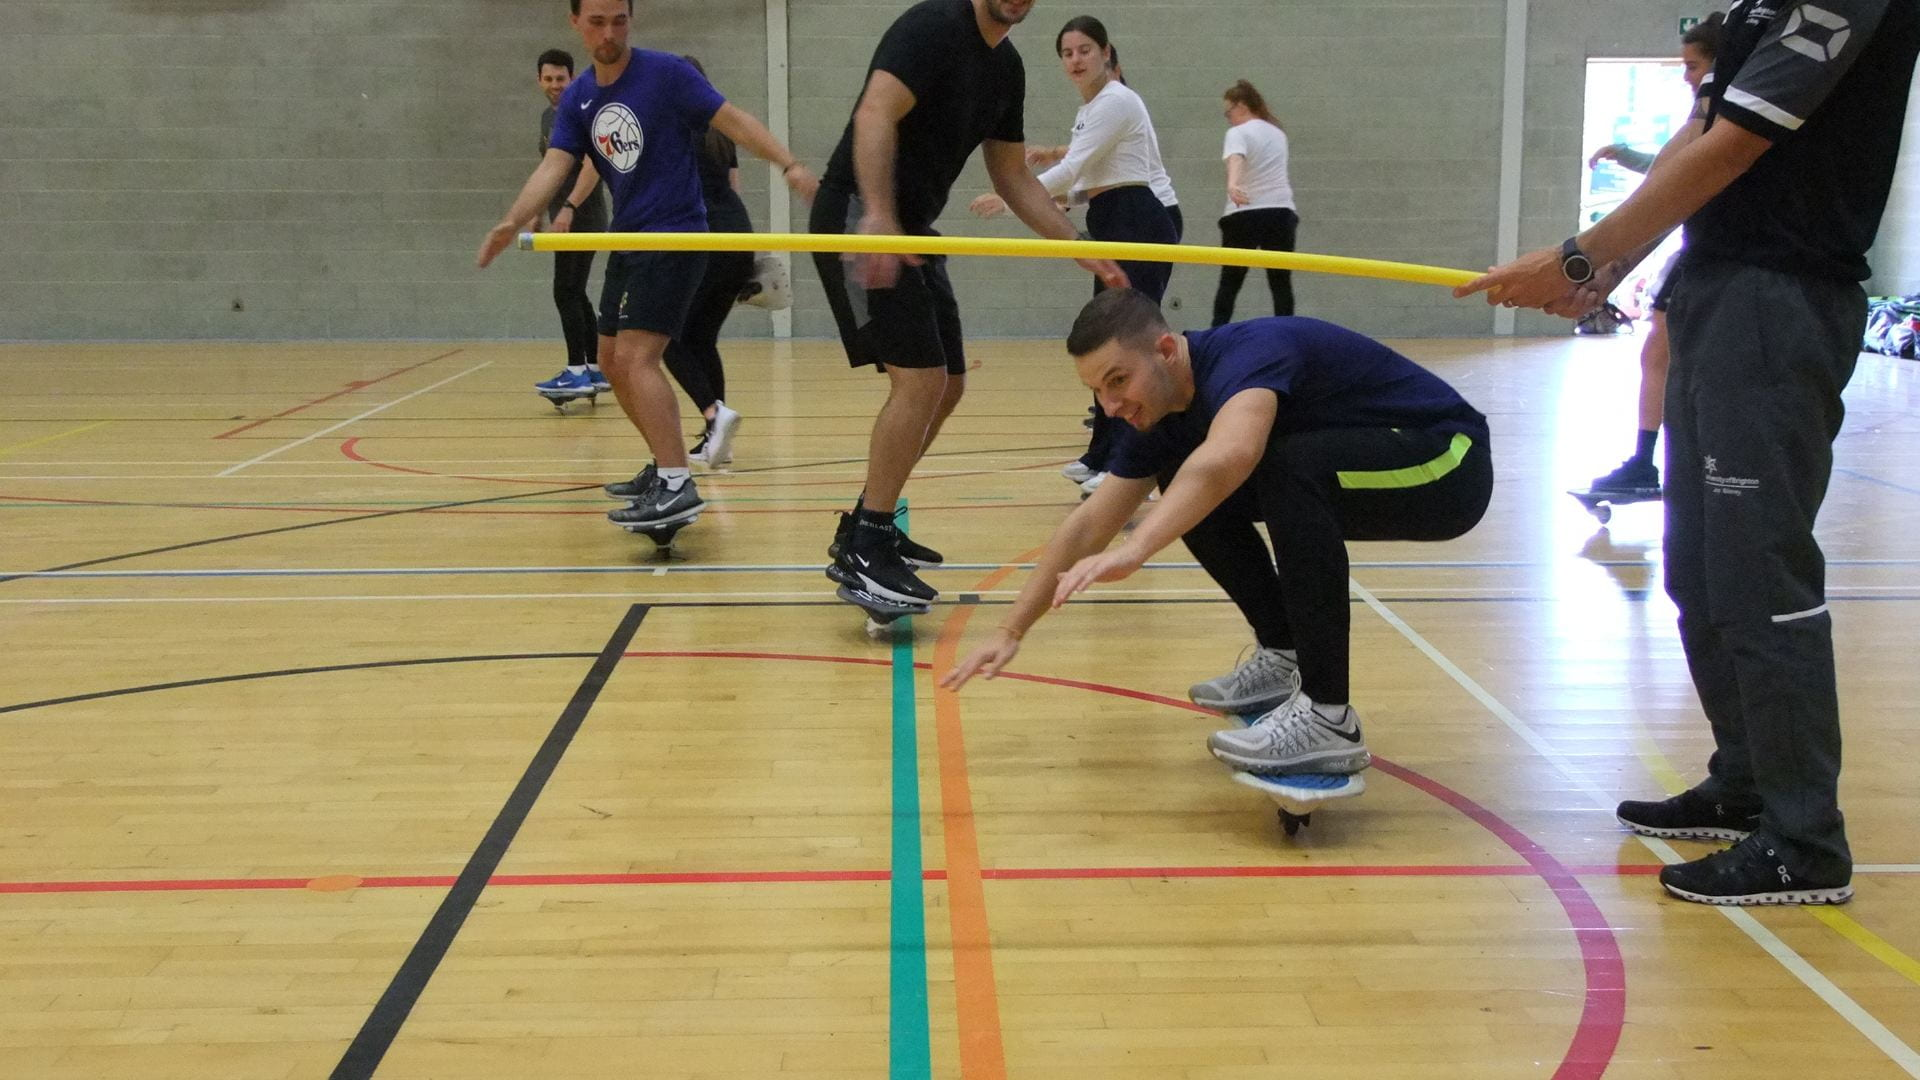 The students street surfing in one of the Eastbourne campus gyms.